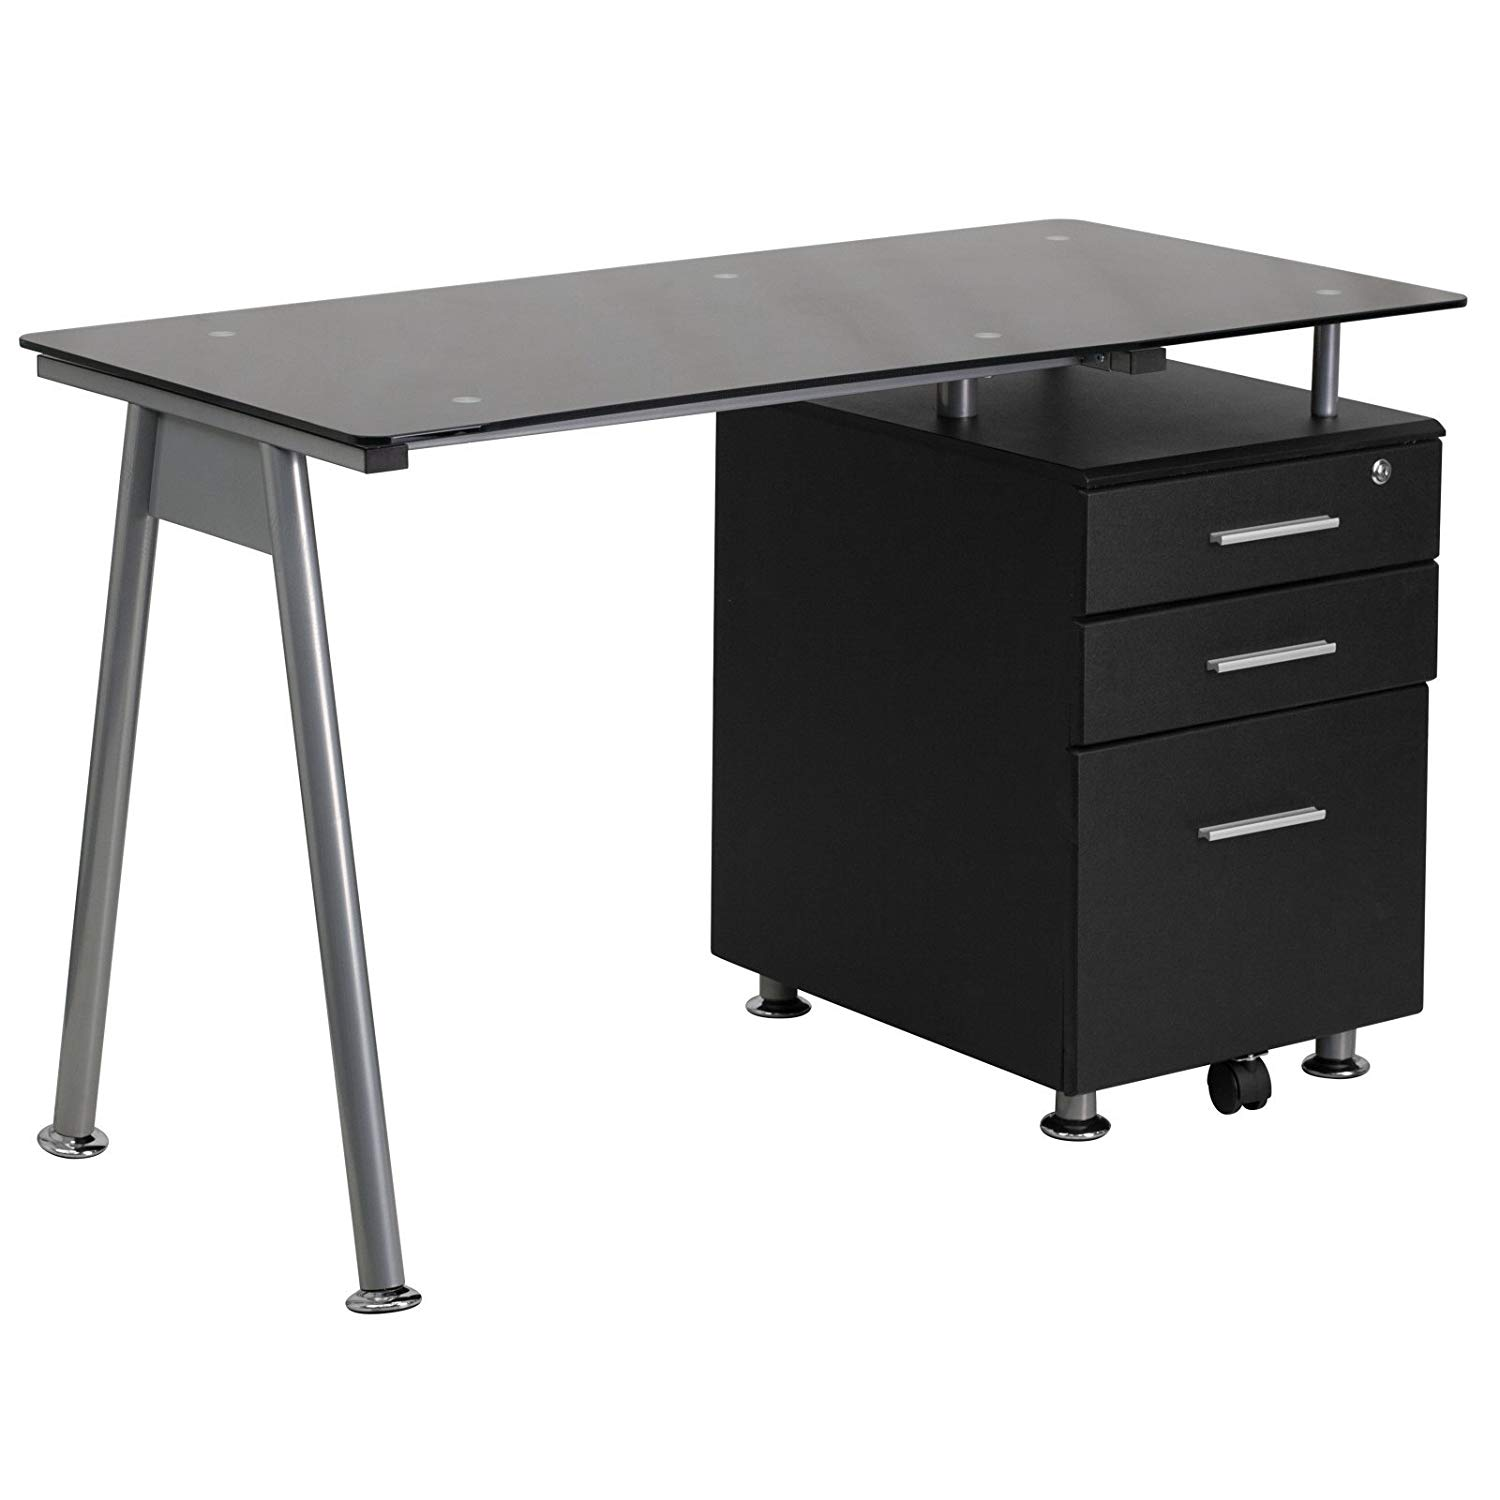 Black Glass Computer Desk 3-Drawer Pedestal, Black Tempered Glass Surface, File Drawer, Rectangular, Silver Bar Pulls, Office, Bundle Our Expert Guide Tips Home Arrangement